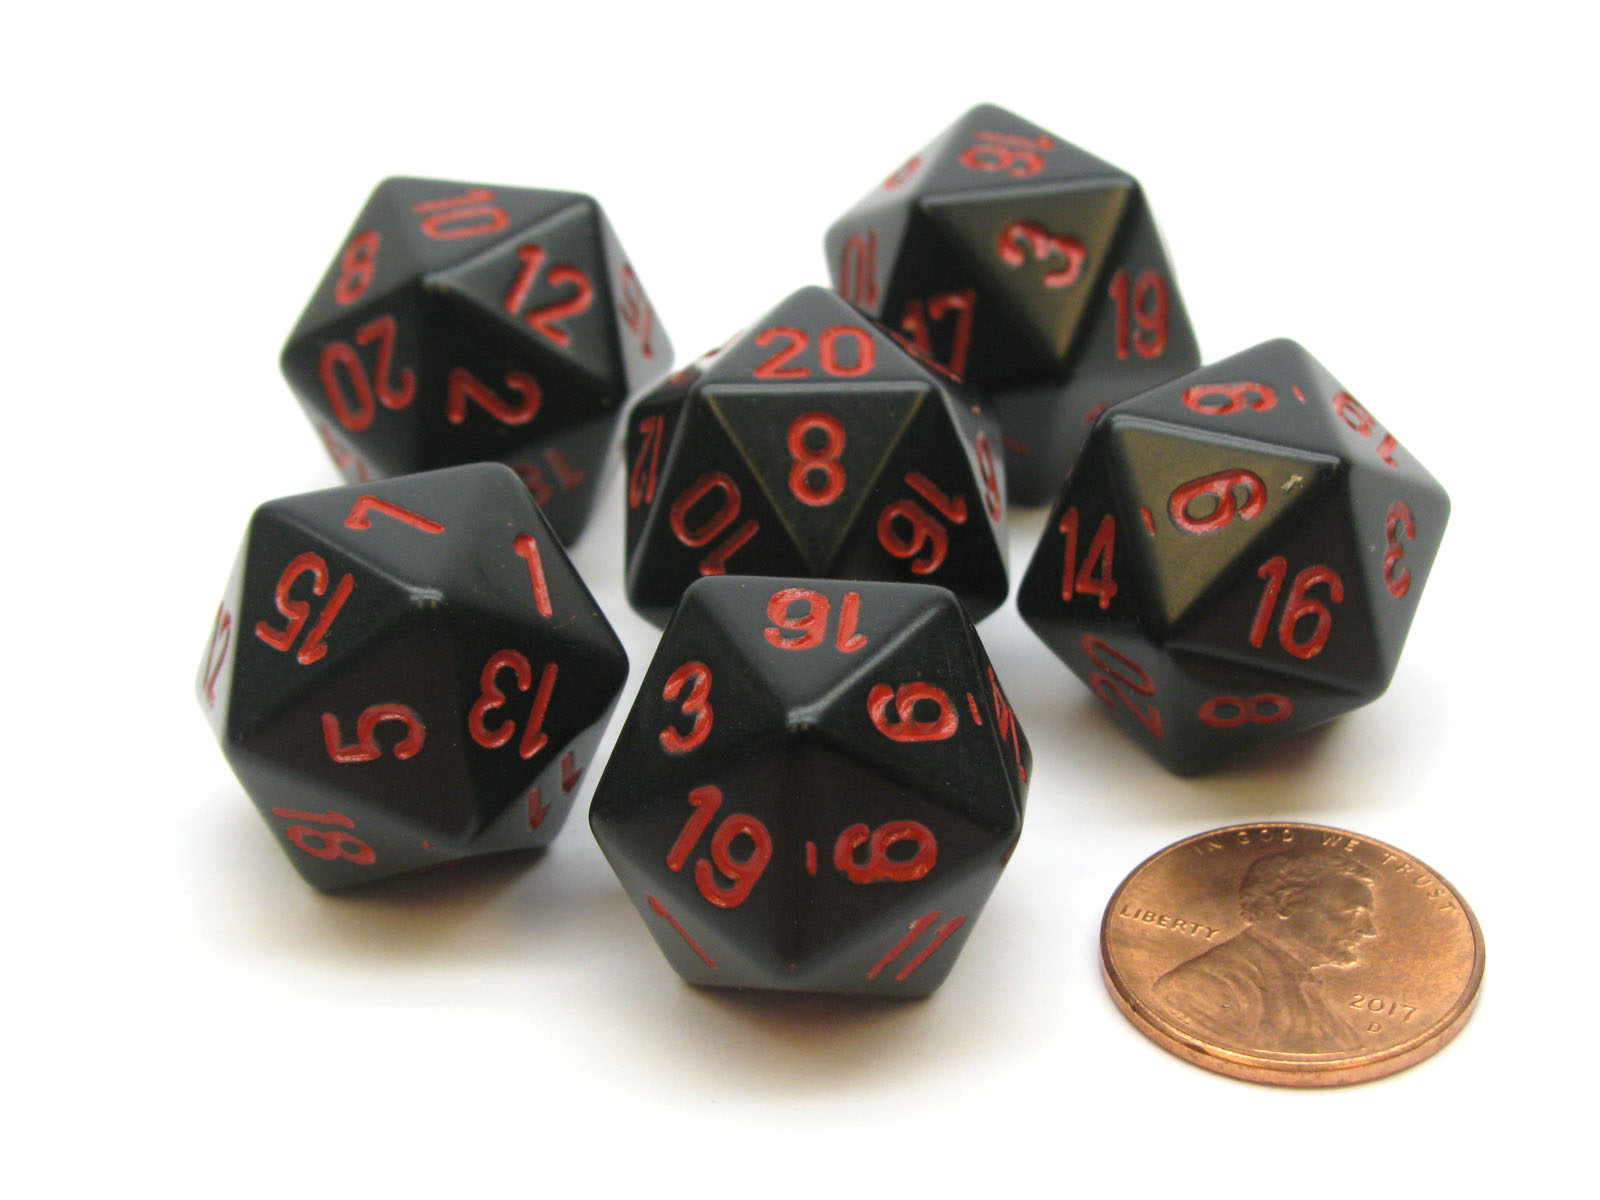 Accessories Games 8 pcs D20 RPG Die D&D 20 Sided Dice Game Gaming